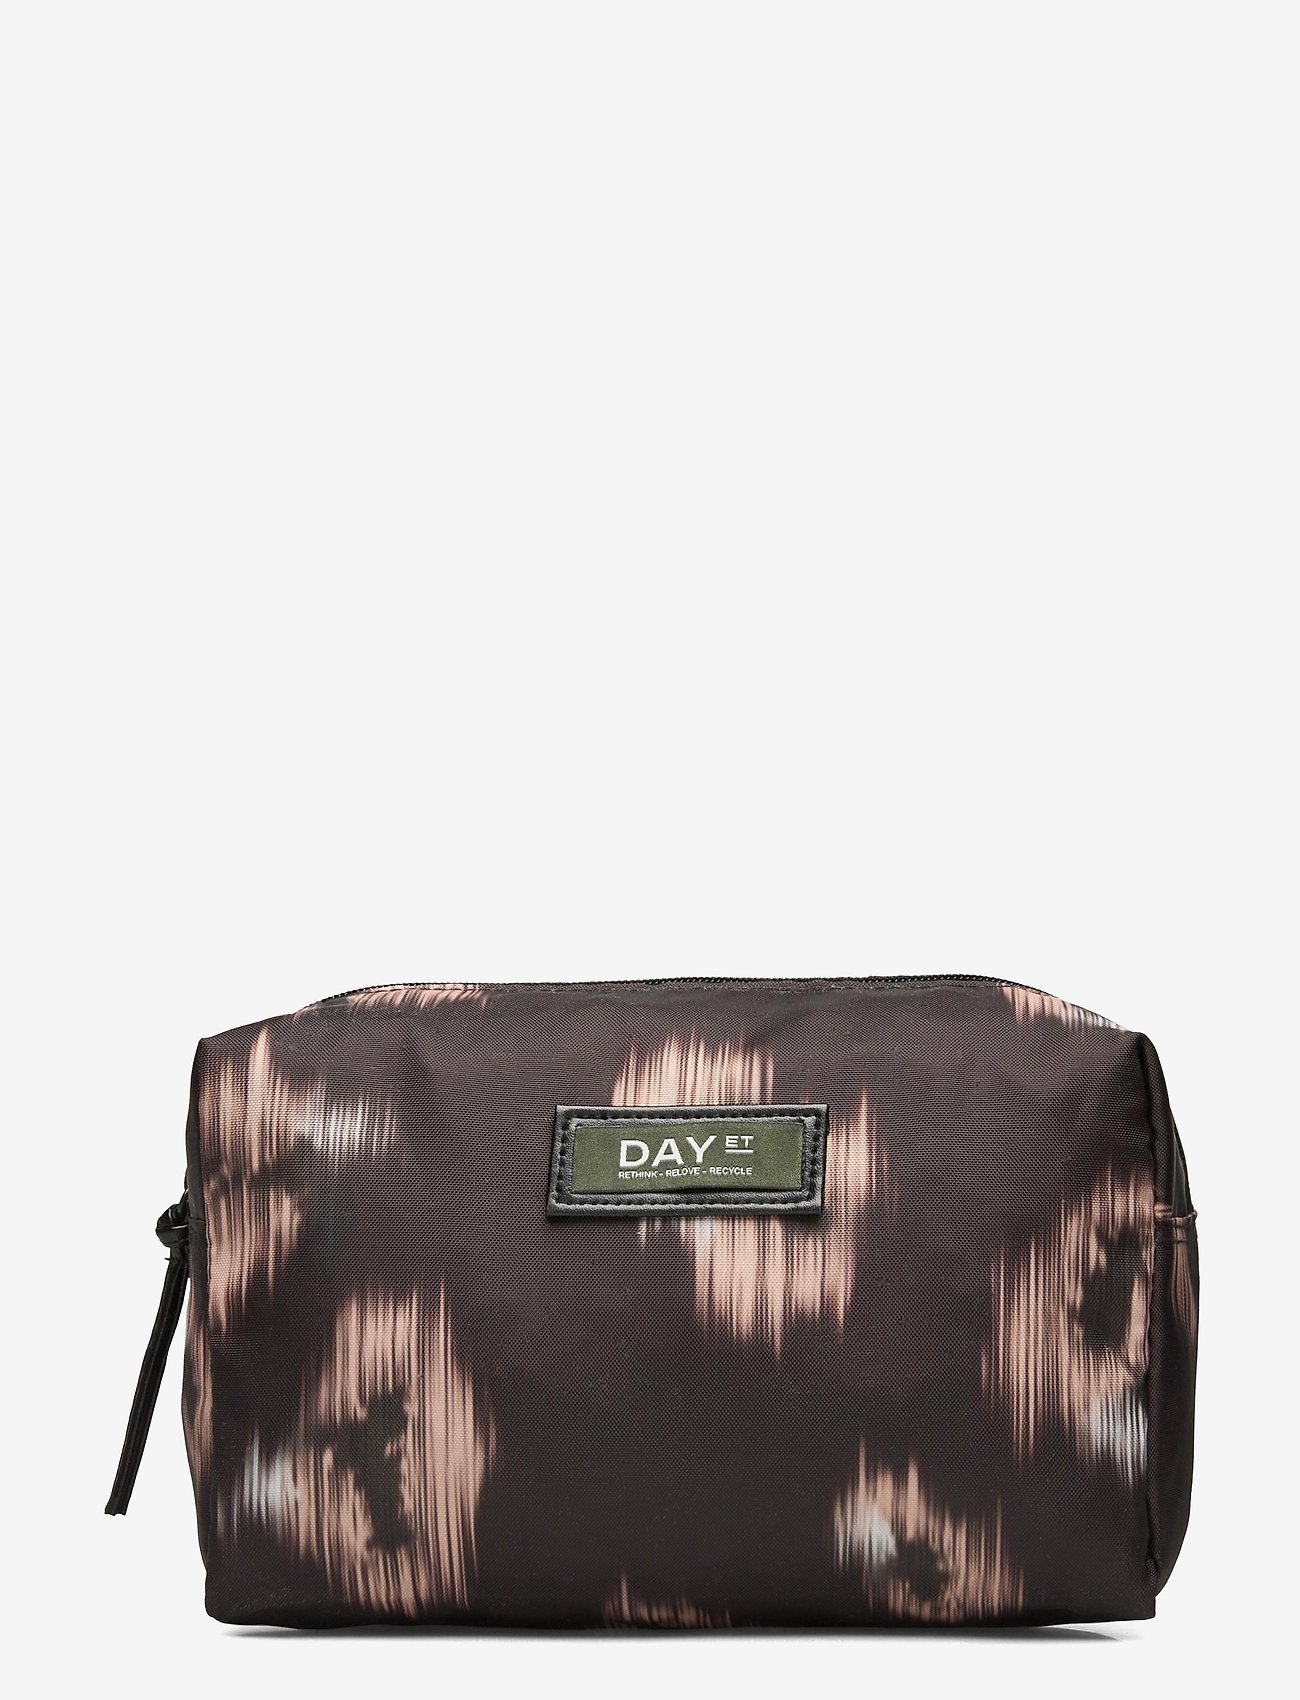 DAY et - Day Gweneth RE-P Ikat Beauty - bags - black - 0